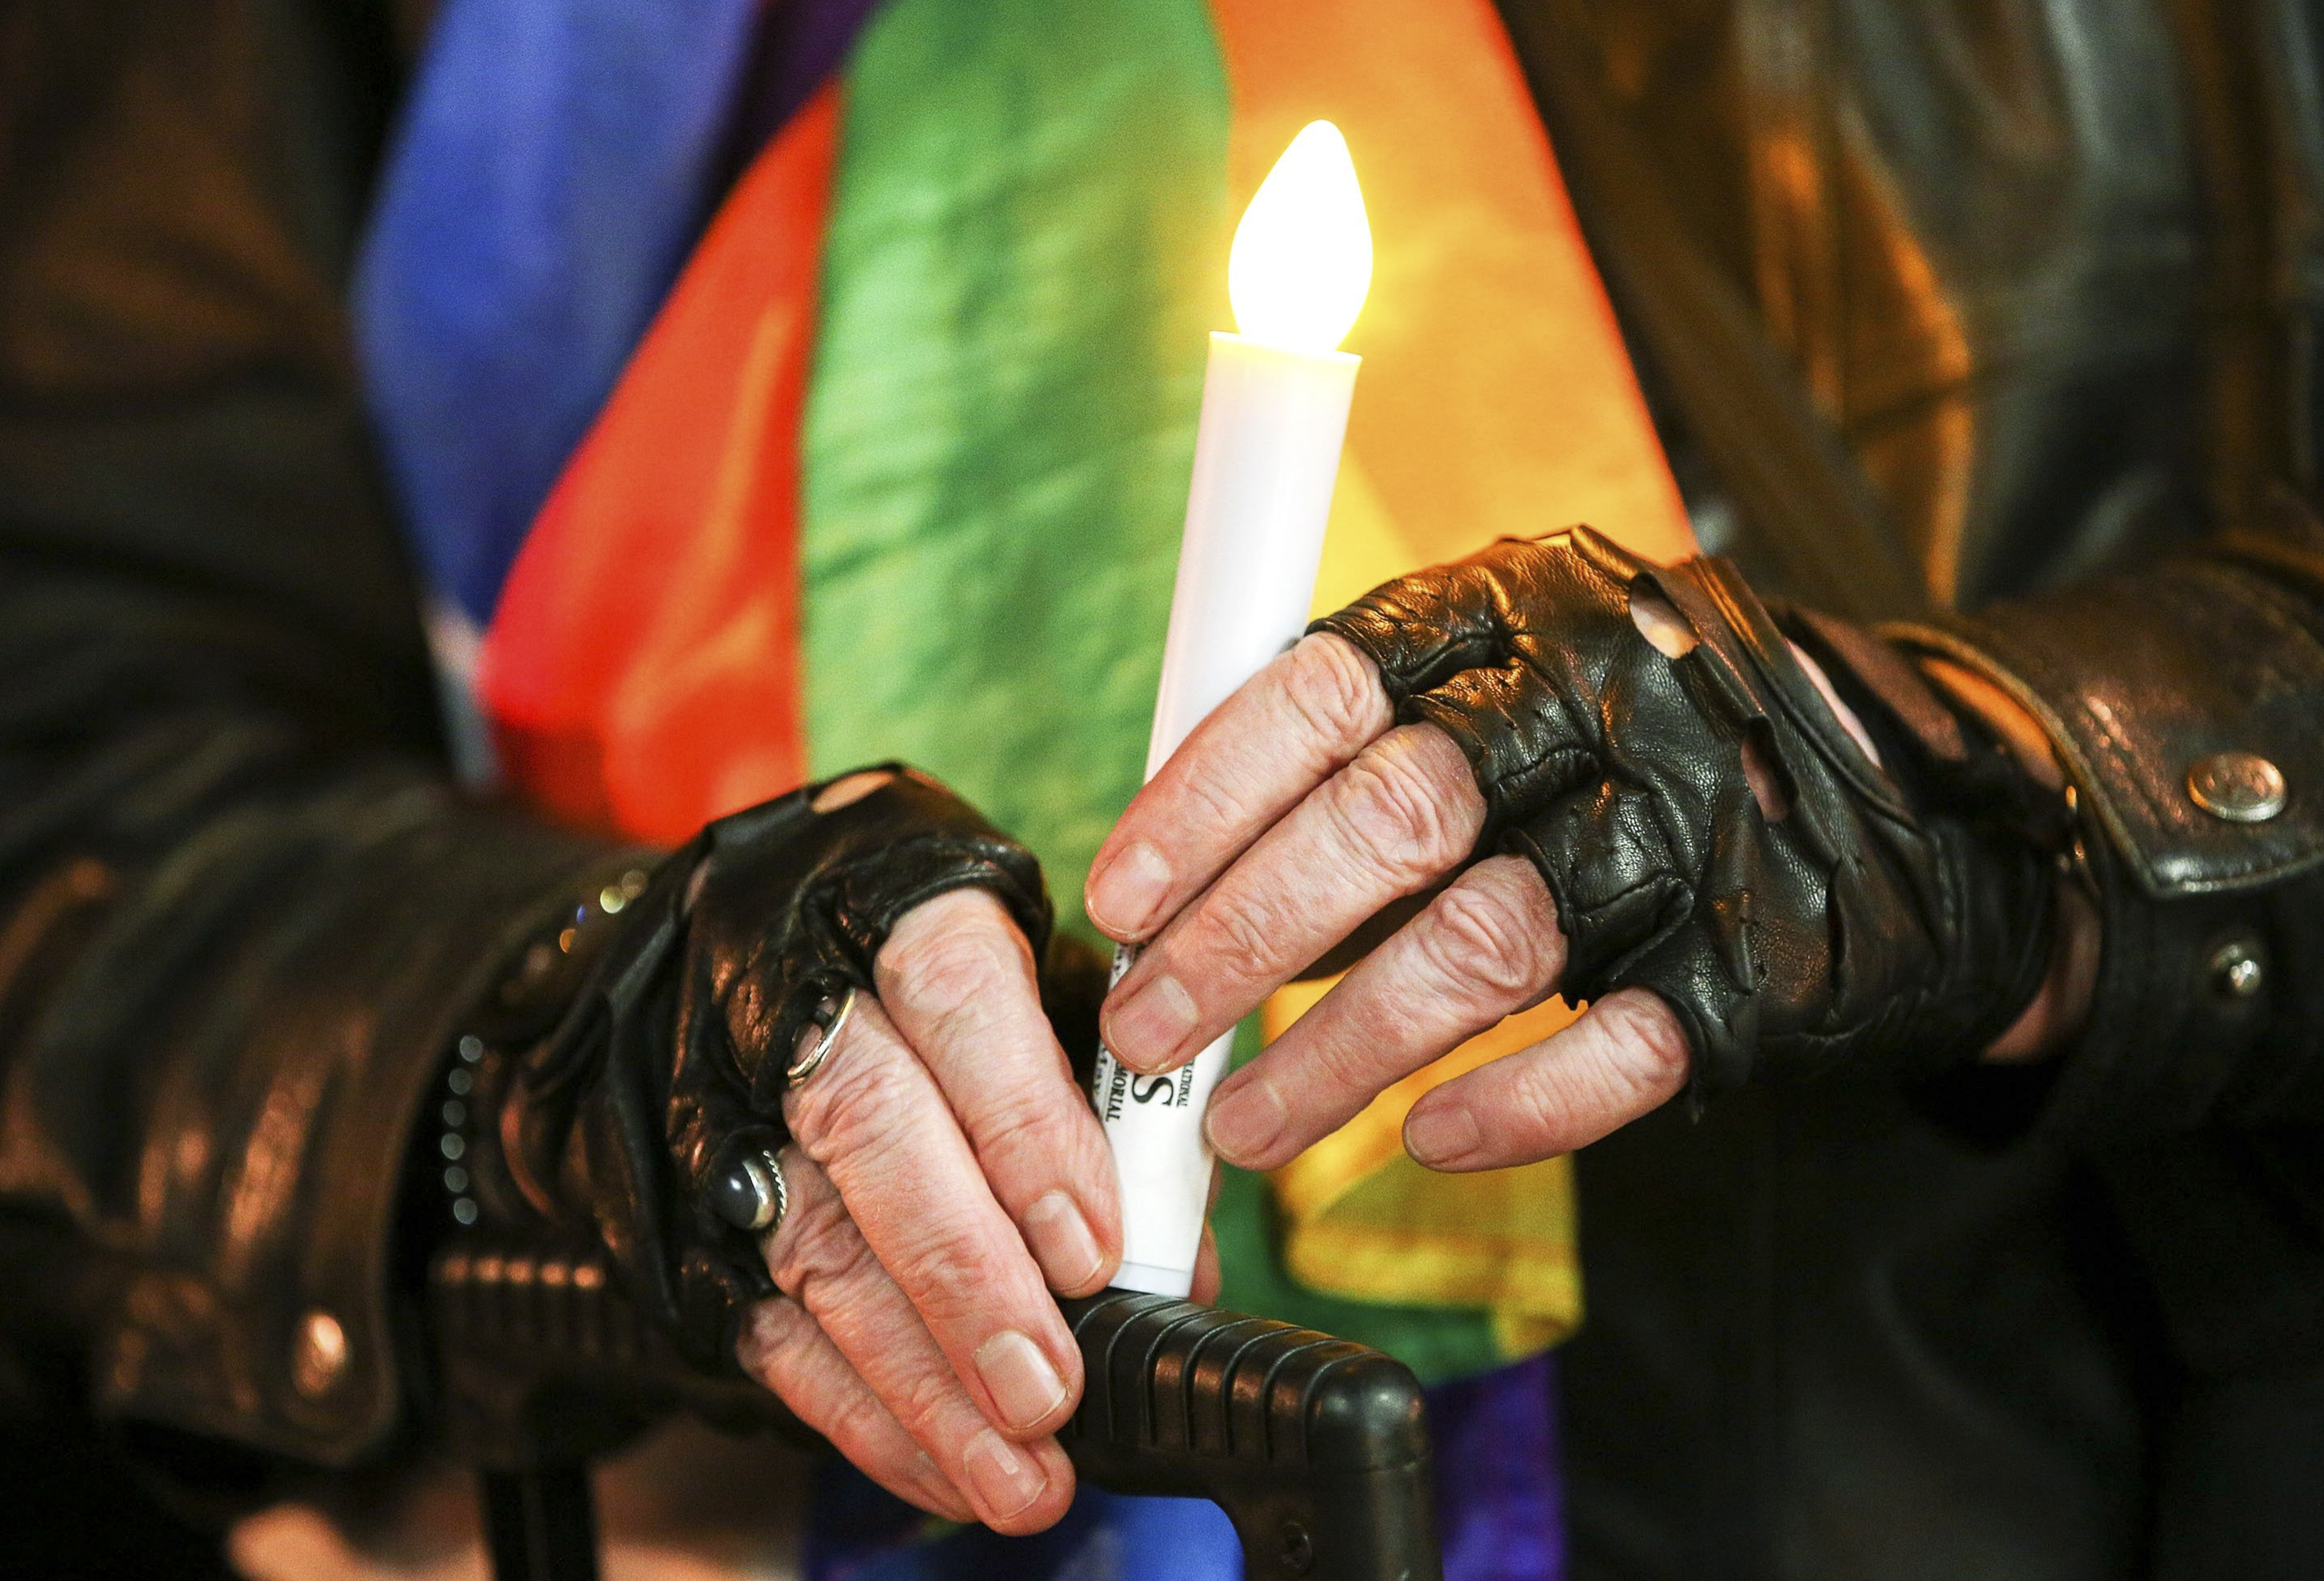 A candlelight vigil for the victims of the Pulse nightclub shooting in Orlando was held at Frank Kitts Park in Wellington, New Zealand, on June 13, 2016.